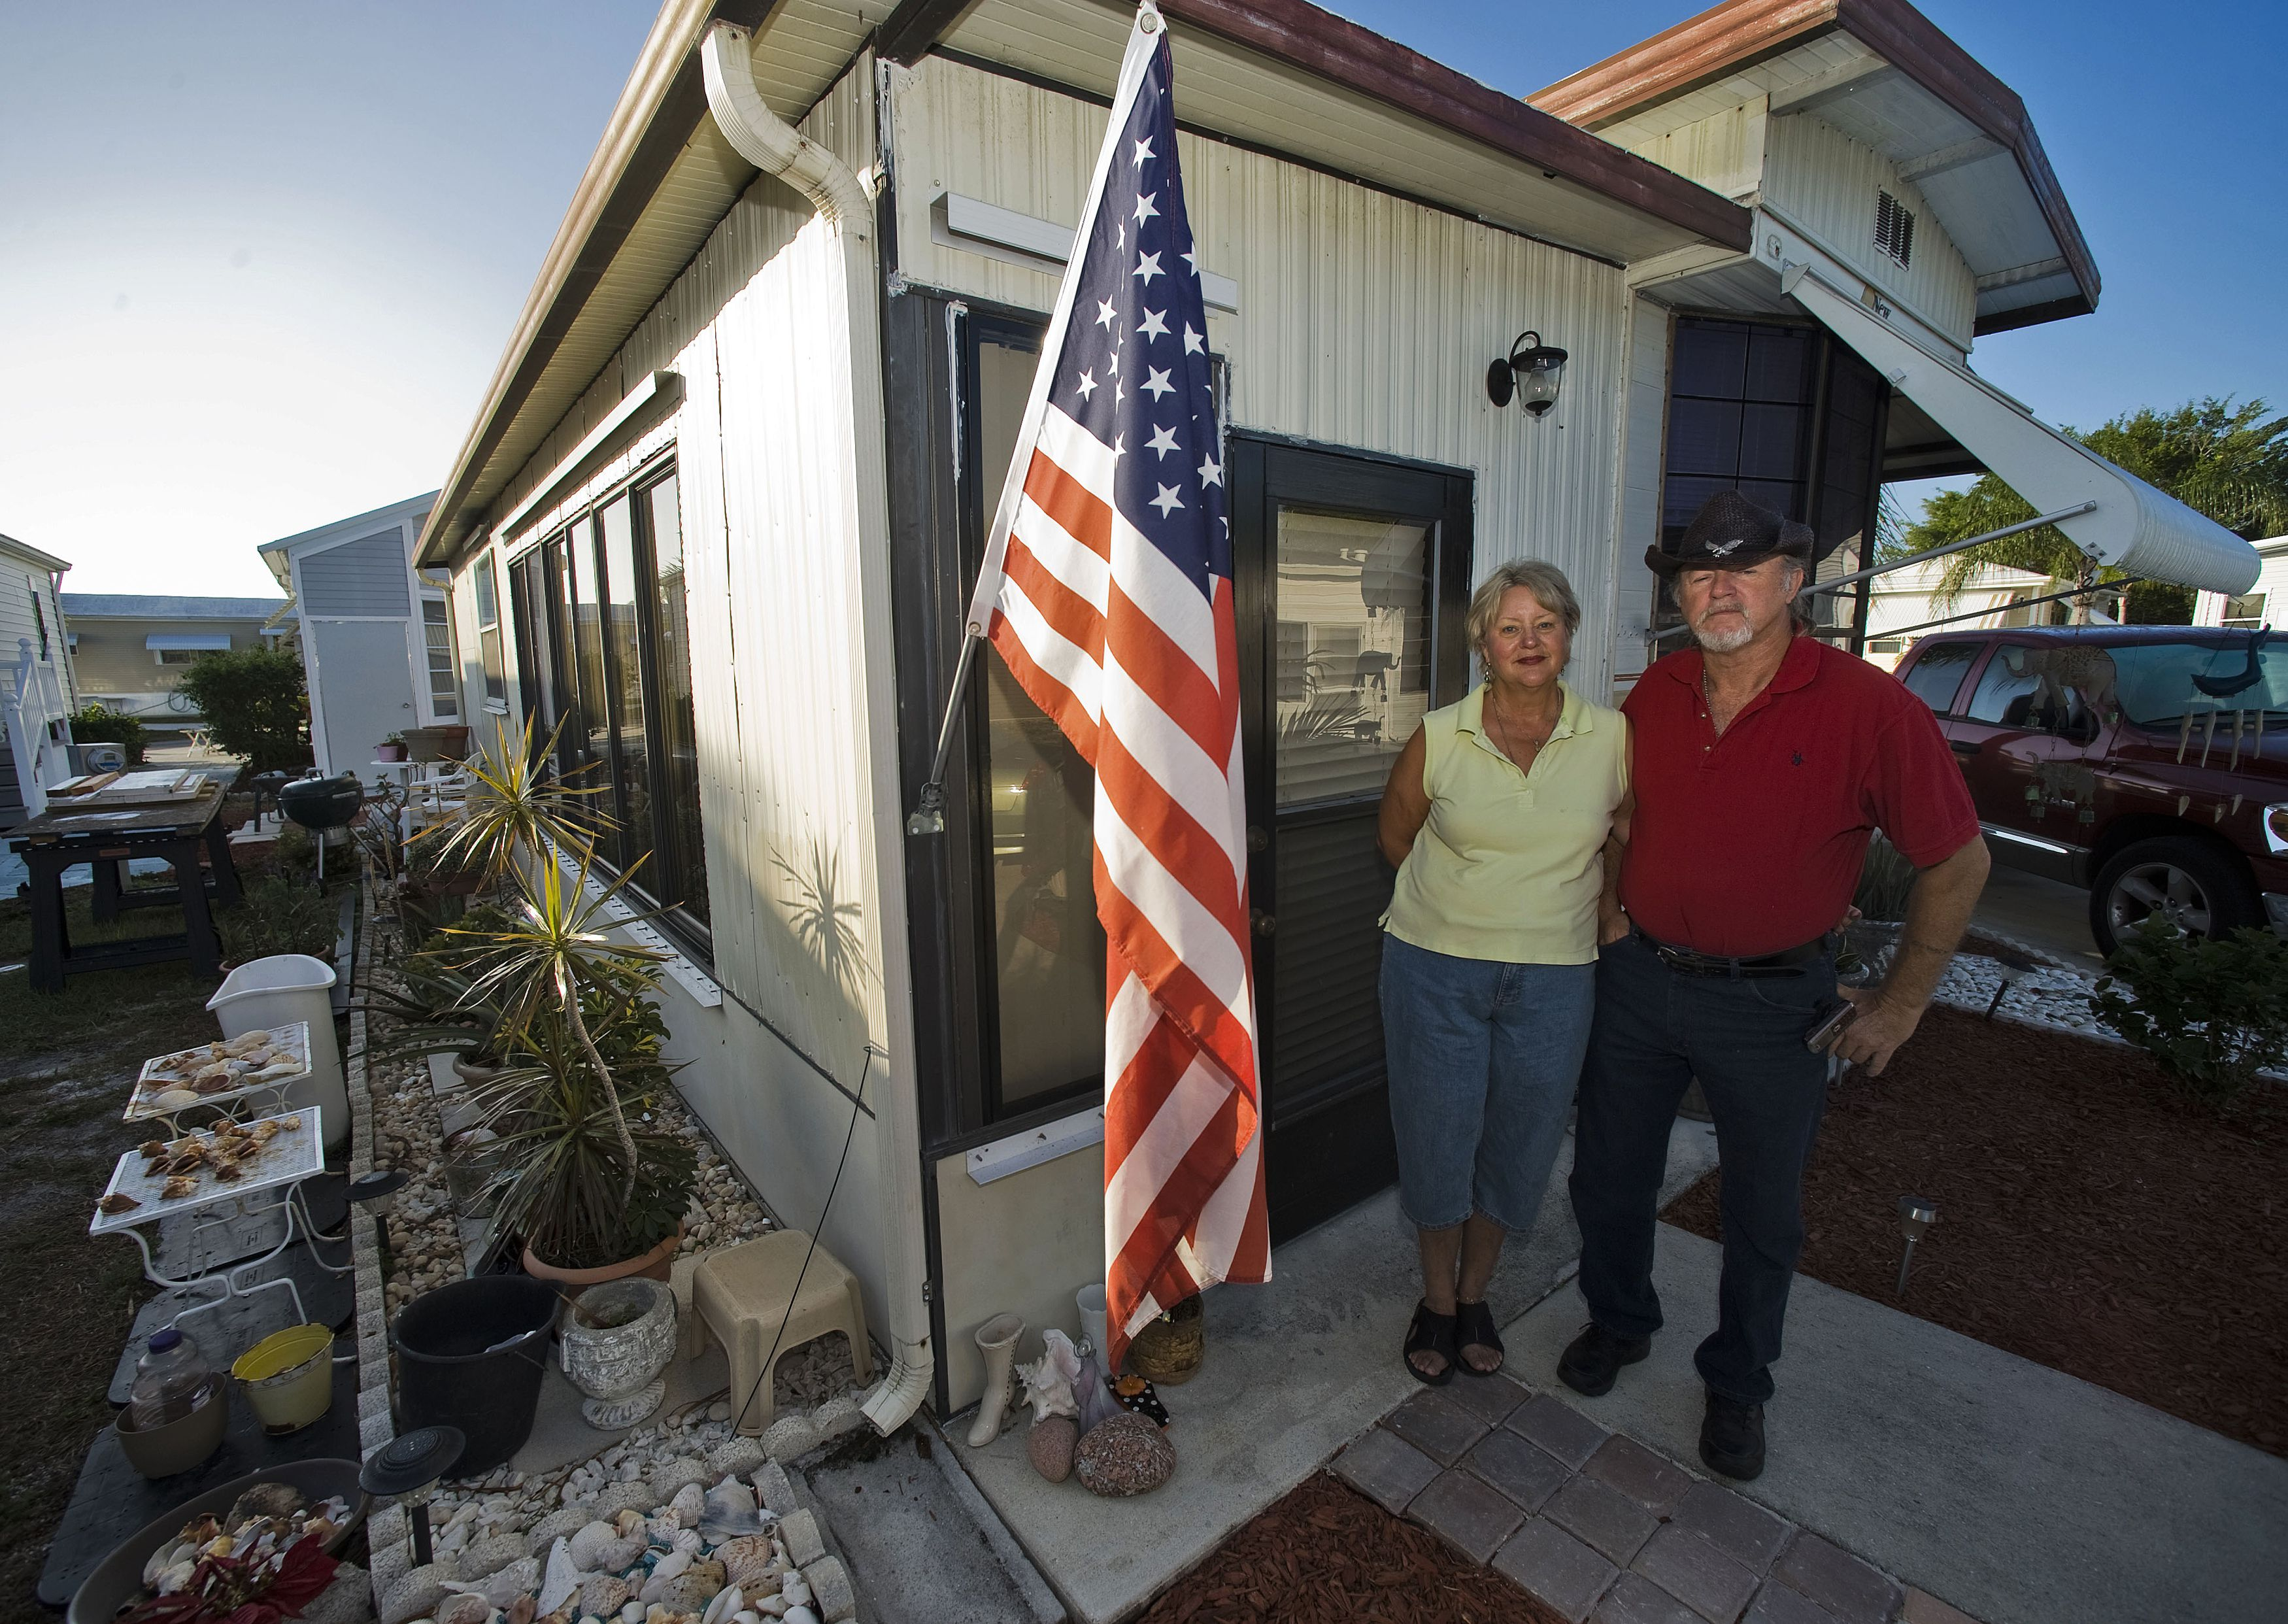 """Andrea Davis and Dewey Schilling stand outside their home at Limetree Park where they live year-round in Bonita Springs, Florida, March 23, 2012. Davis, 63, a former secretary, said she hadn't worked long enough at one place to build up a 401K. """"If it weren't for Social Security, I would probably be on the street,"""" she added."""